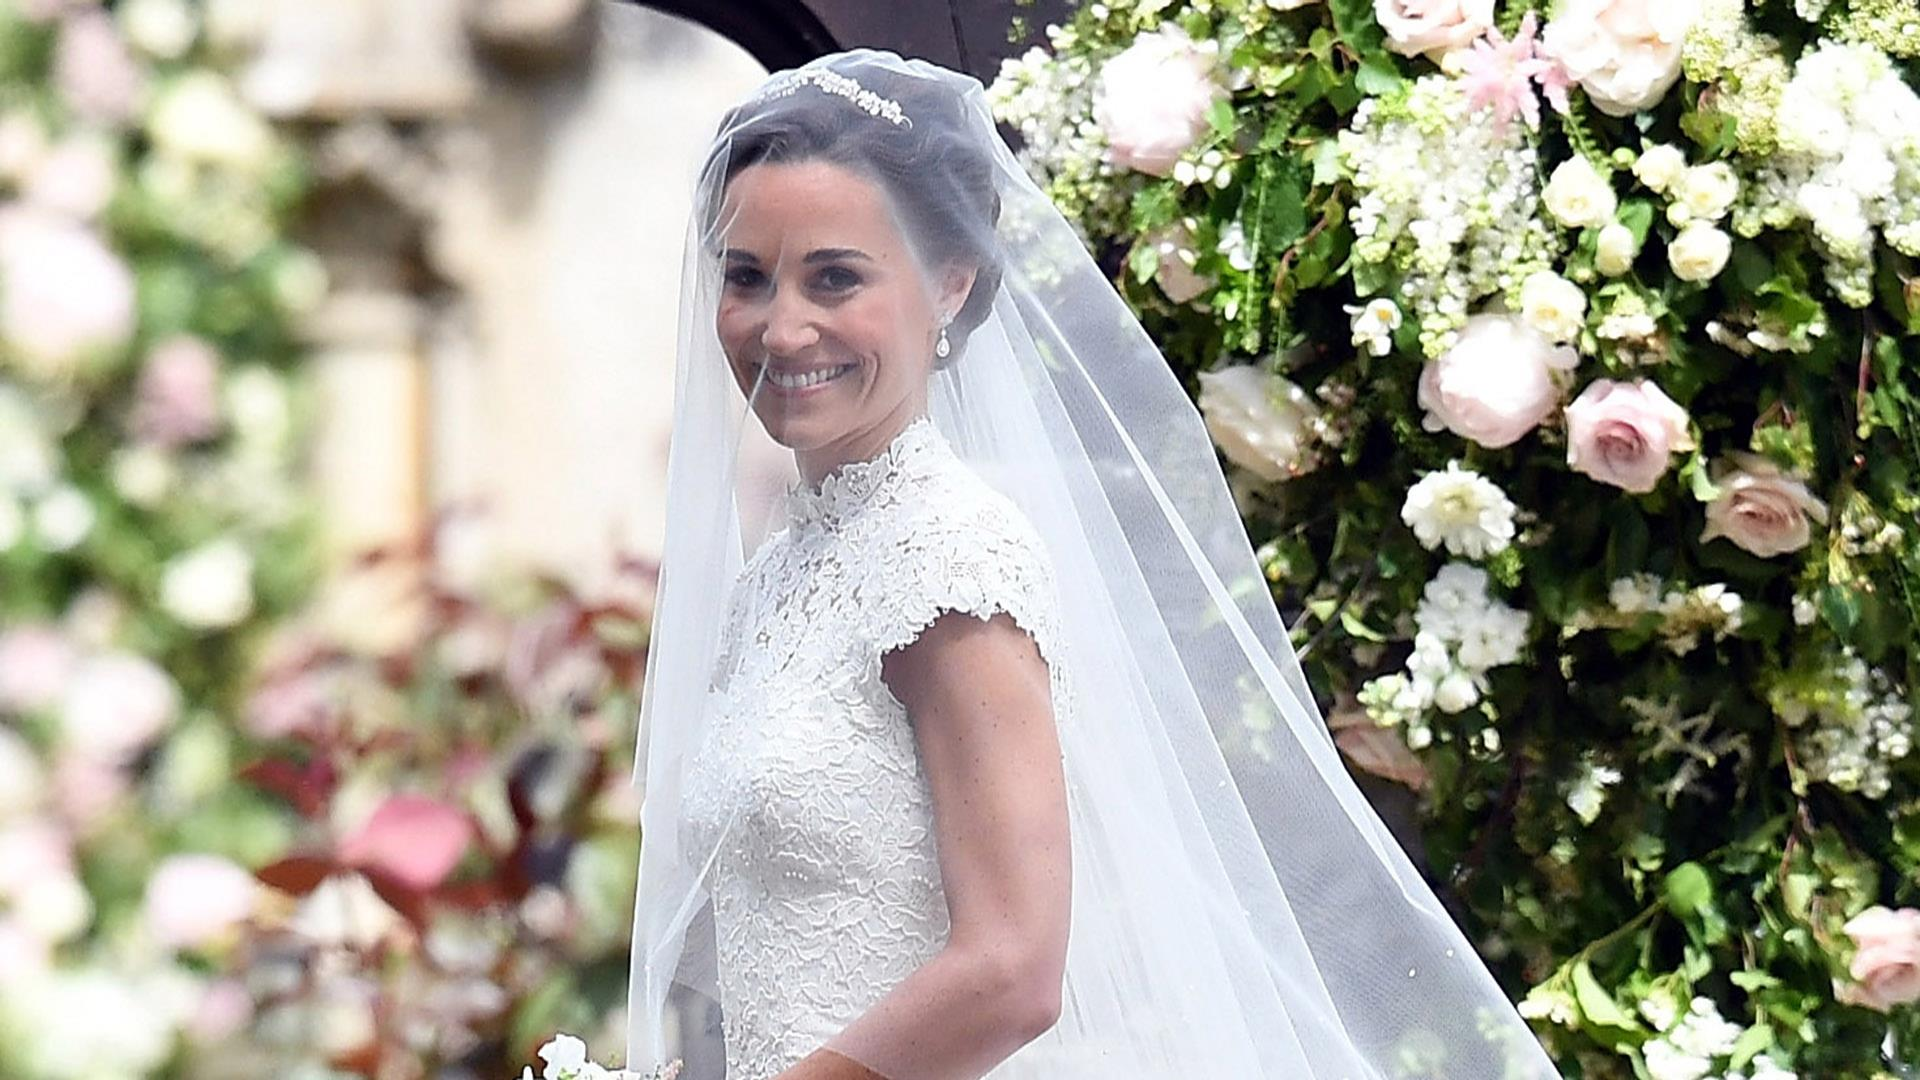 Pippa middleton wedding see what bride and sister kate for Pippa middleton wedding dress